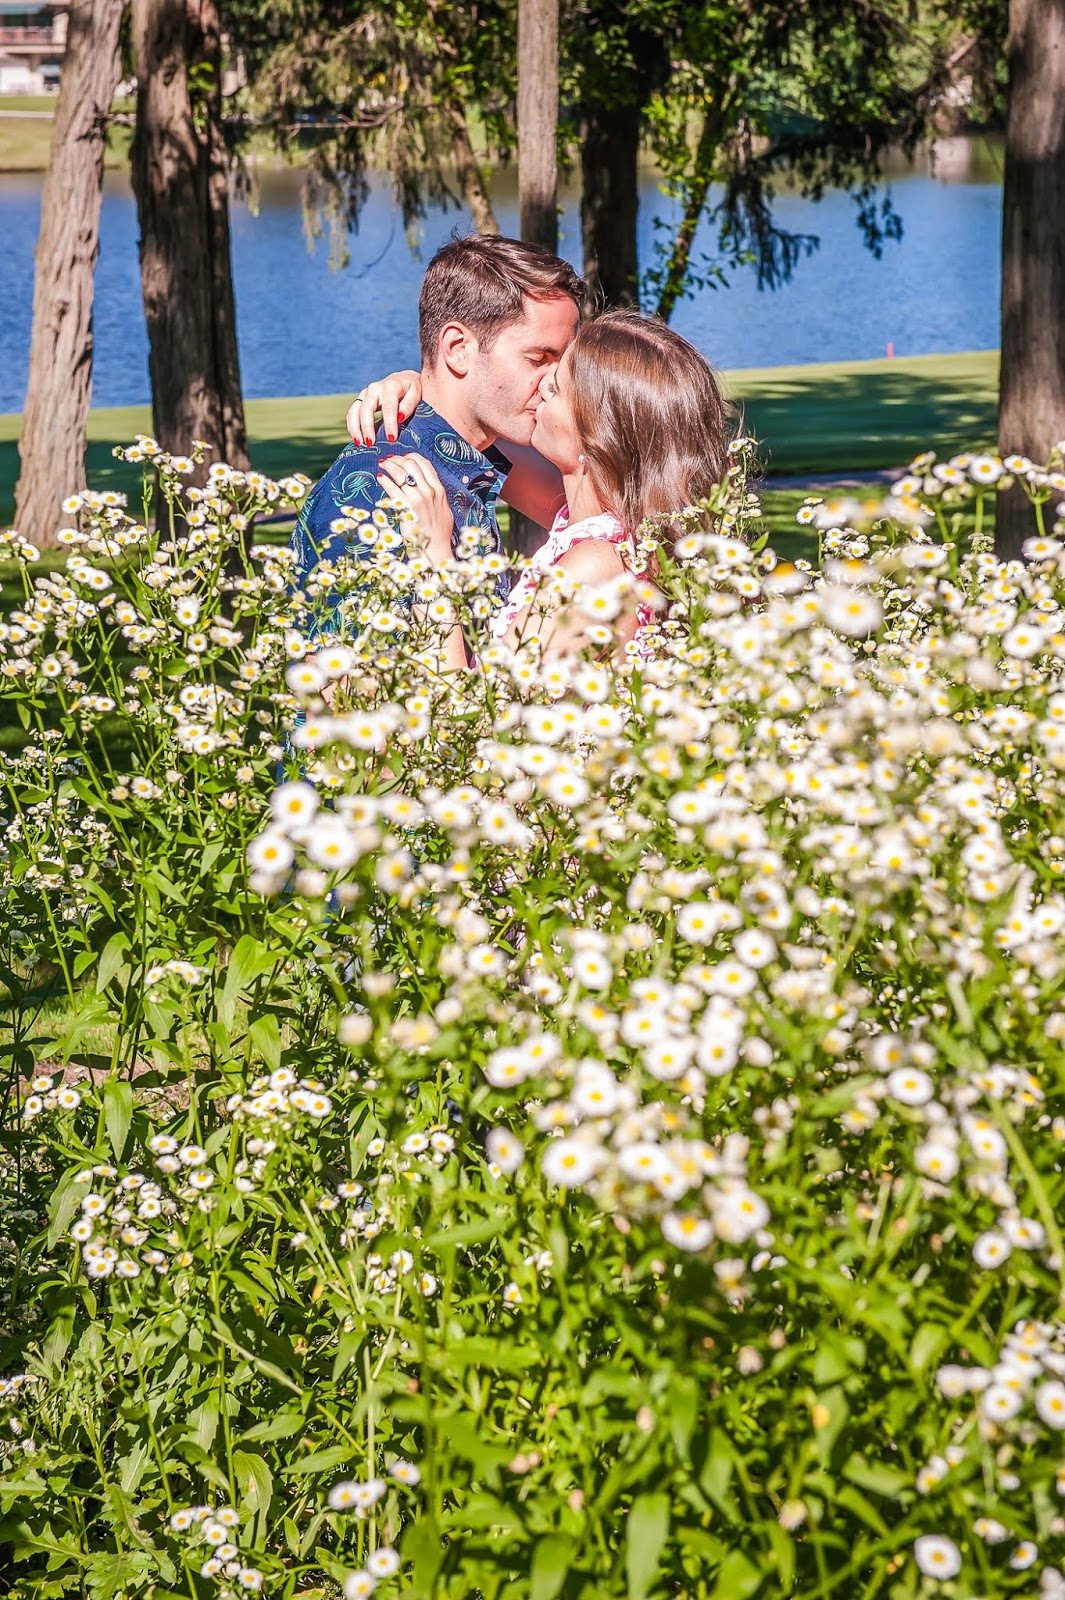 Our Engagement Story  featured by popular New York blogger, Covering the Bases